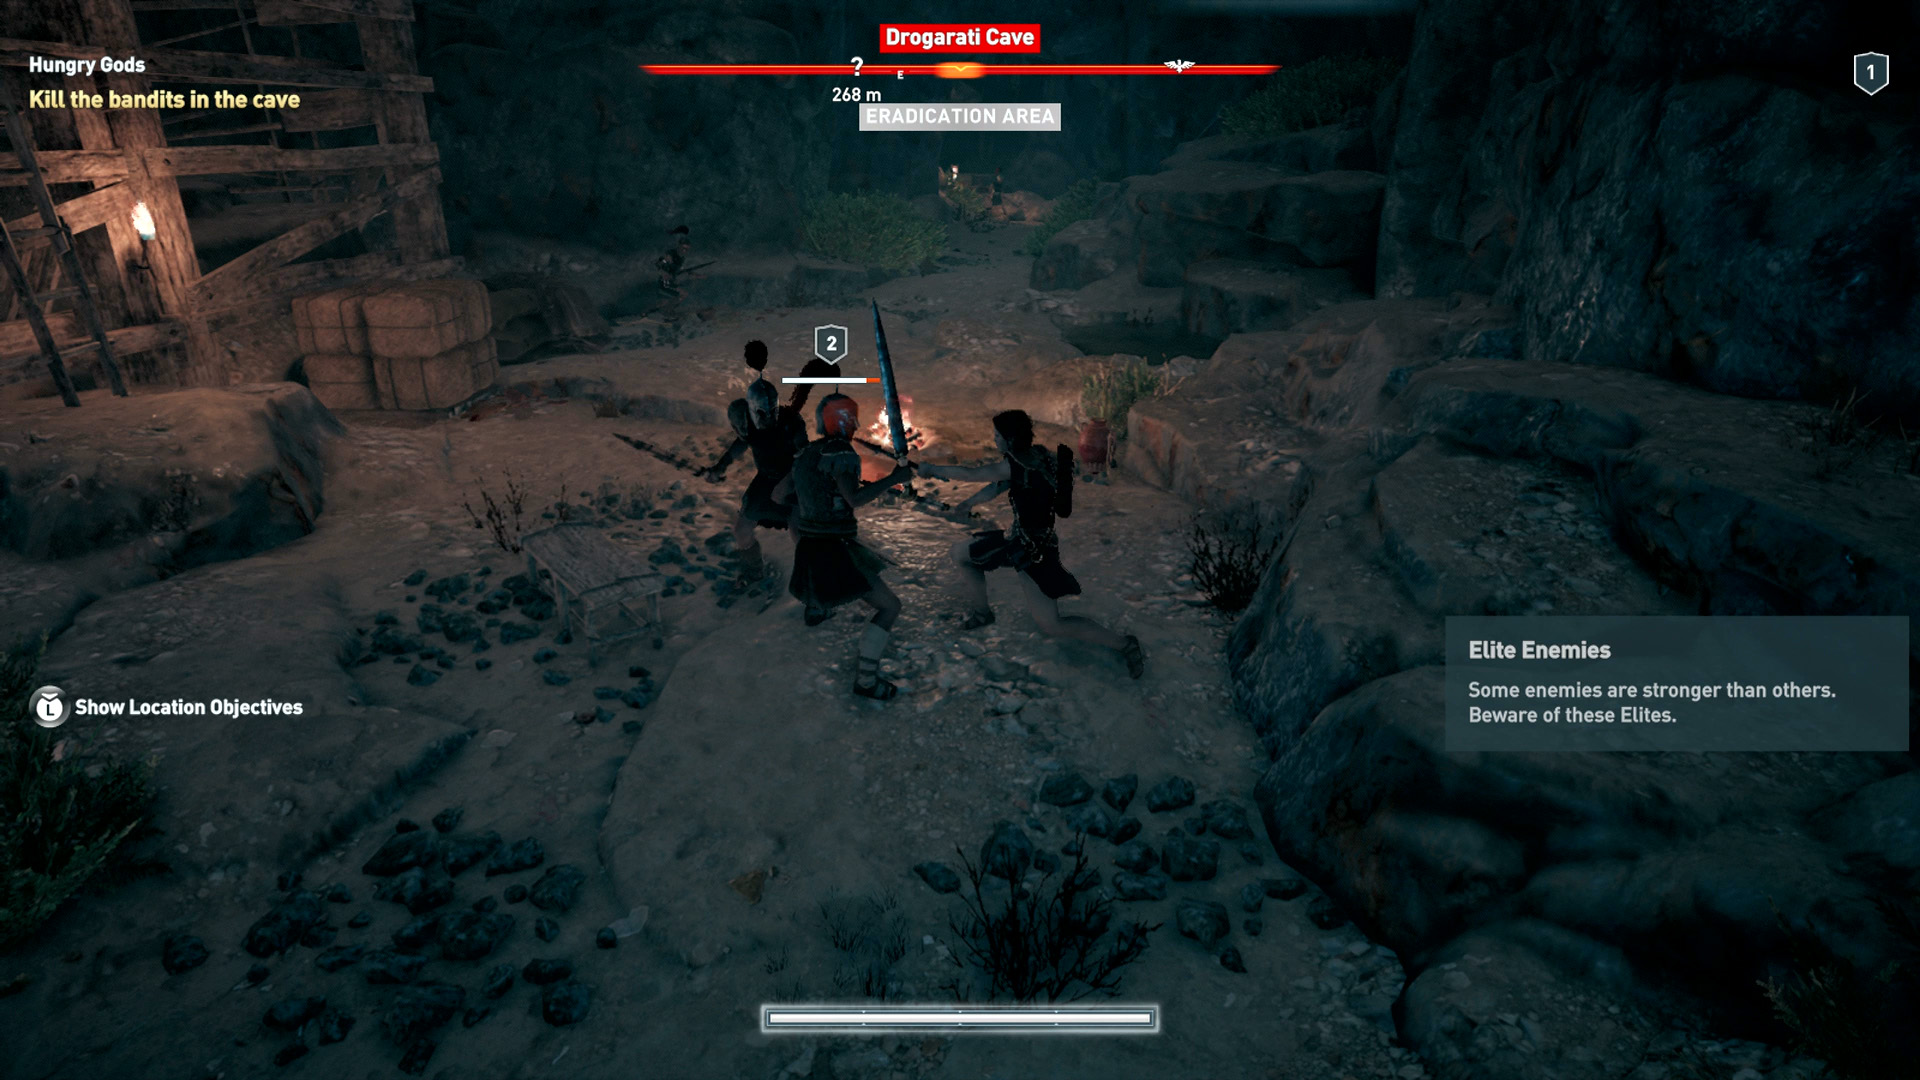 Kassandra fighting two bandits in a cave.